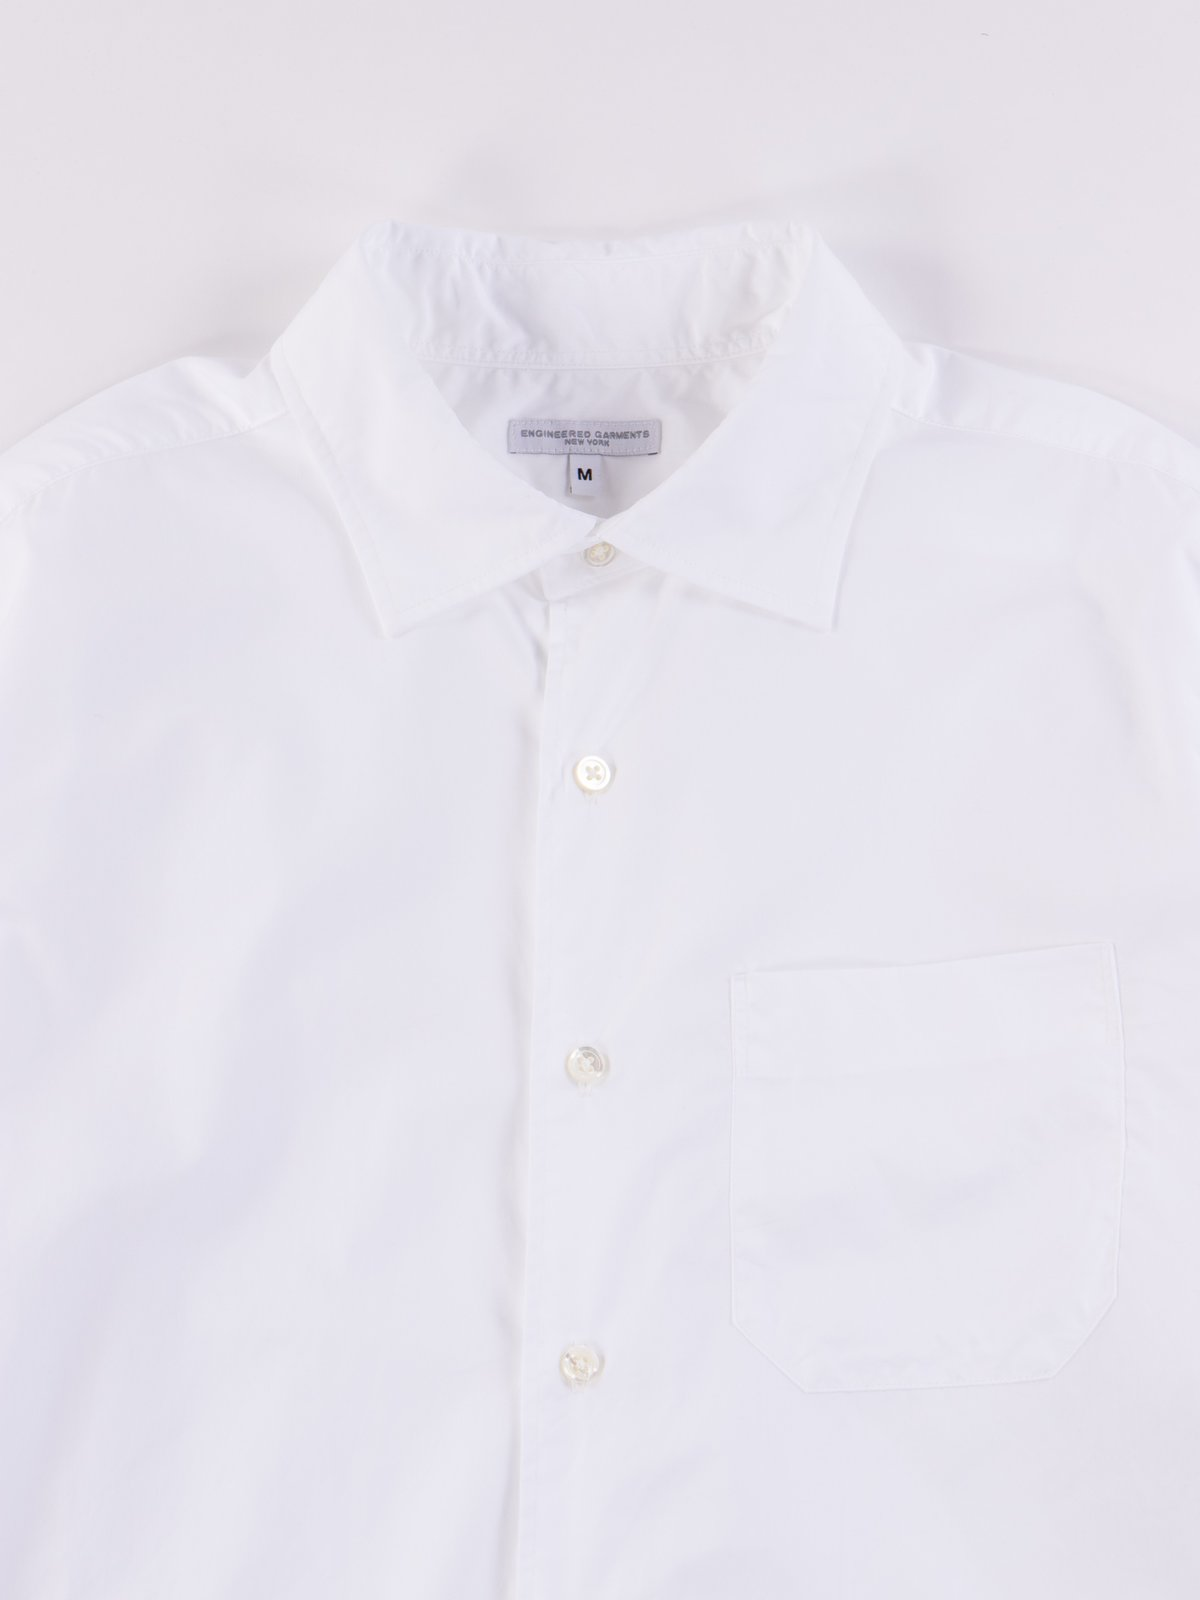 White 100's 2Ply Broadcloth Spread Collar Shirt SS20 - Image 3